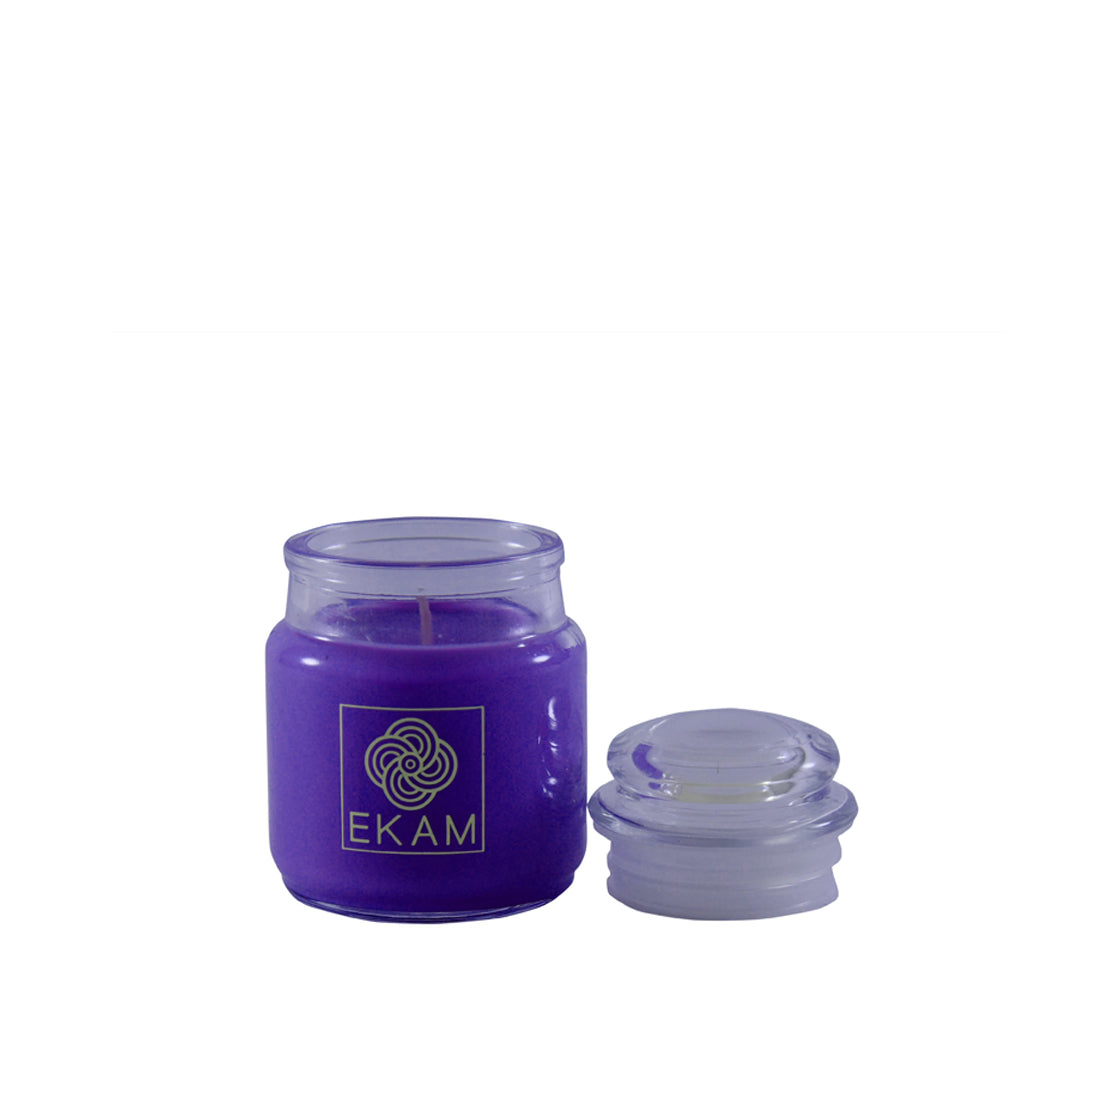 Ekem jar candles online